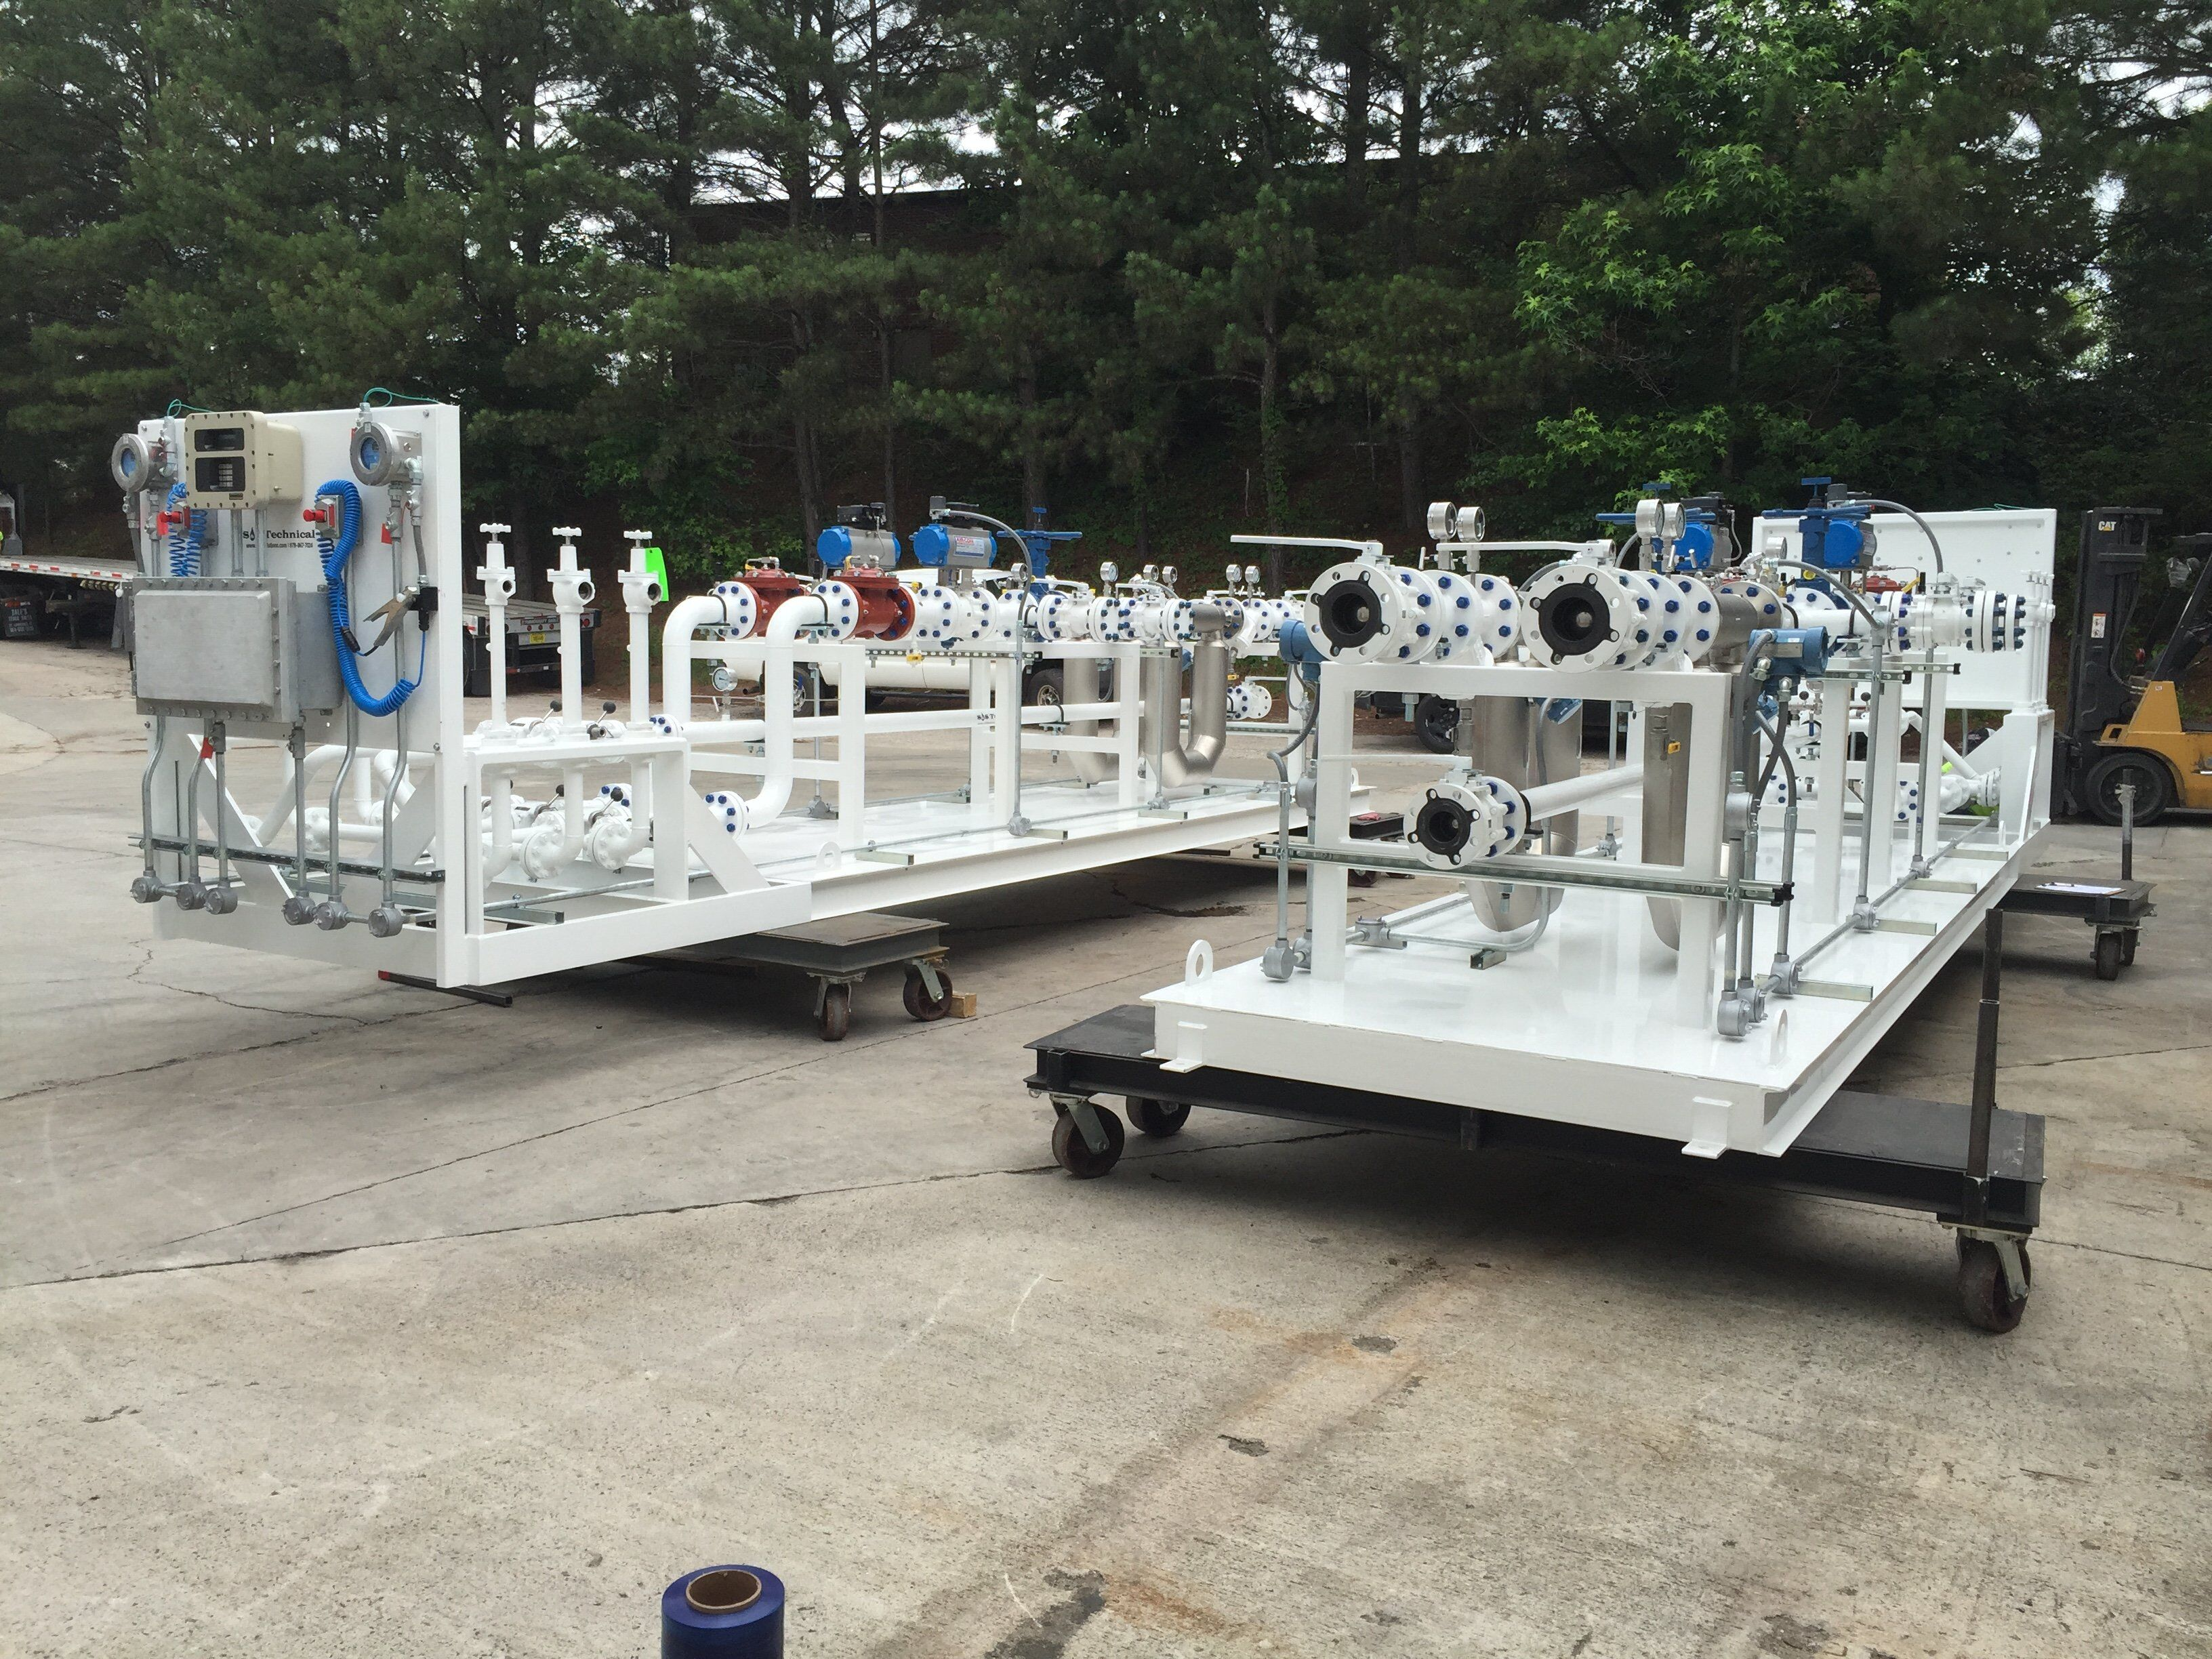 Truck Loading-Unloading Skid Systems - S&S Technical, Inc